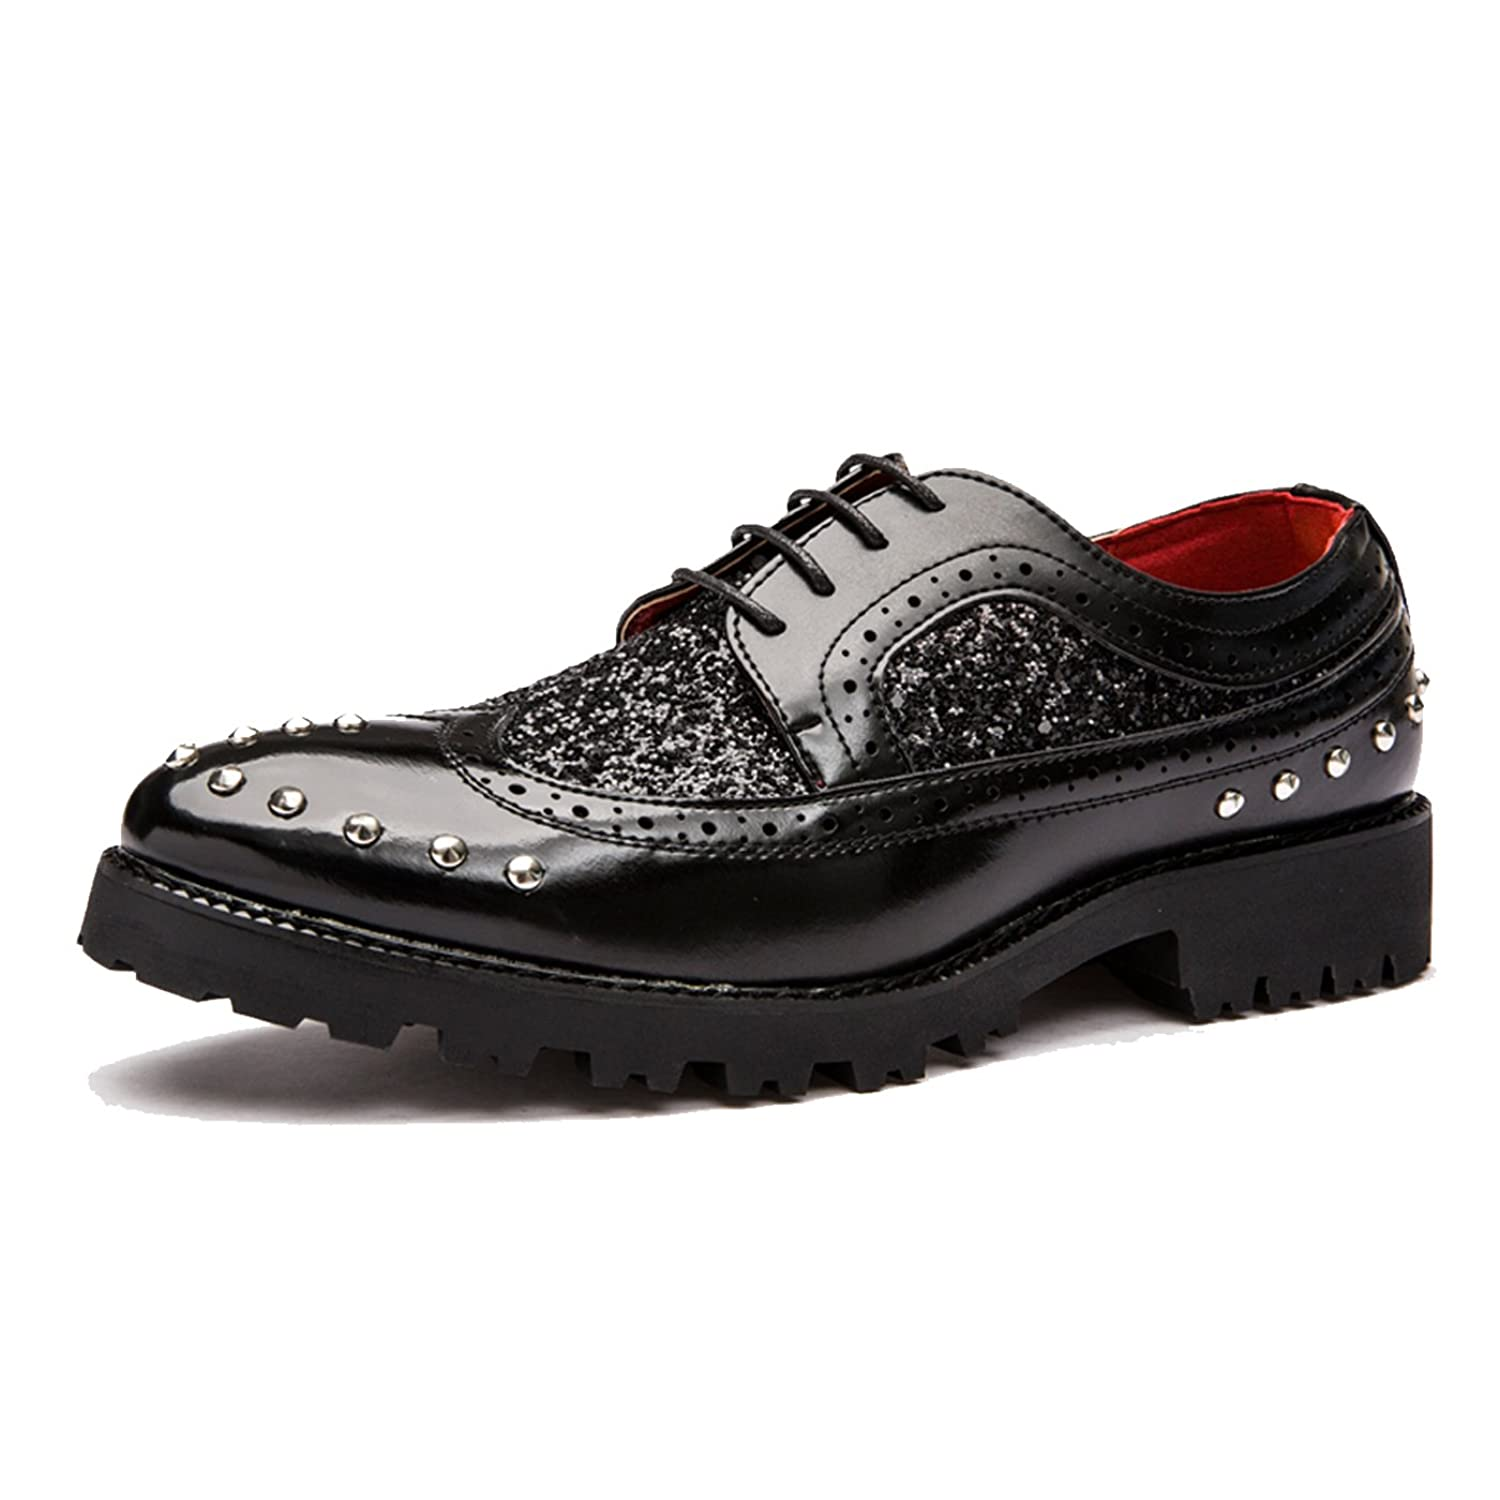 Men's Heighten Sequins Rivet Thick Sole Patent Leather Loafers Shoe